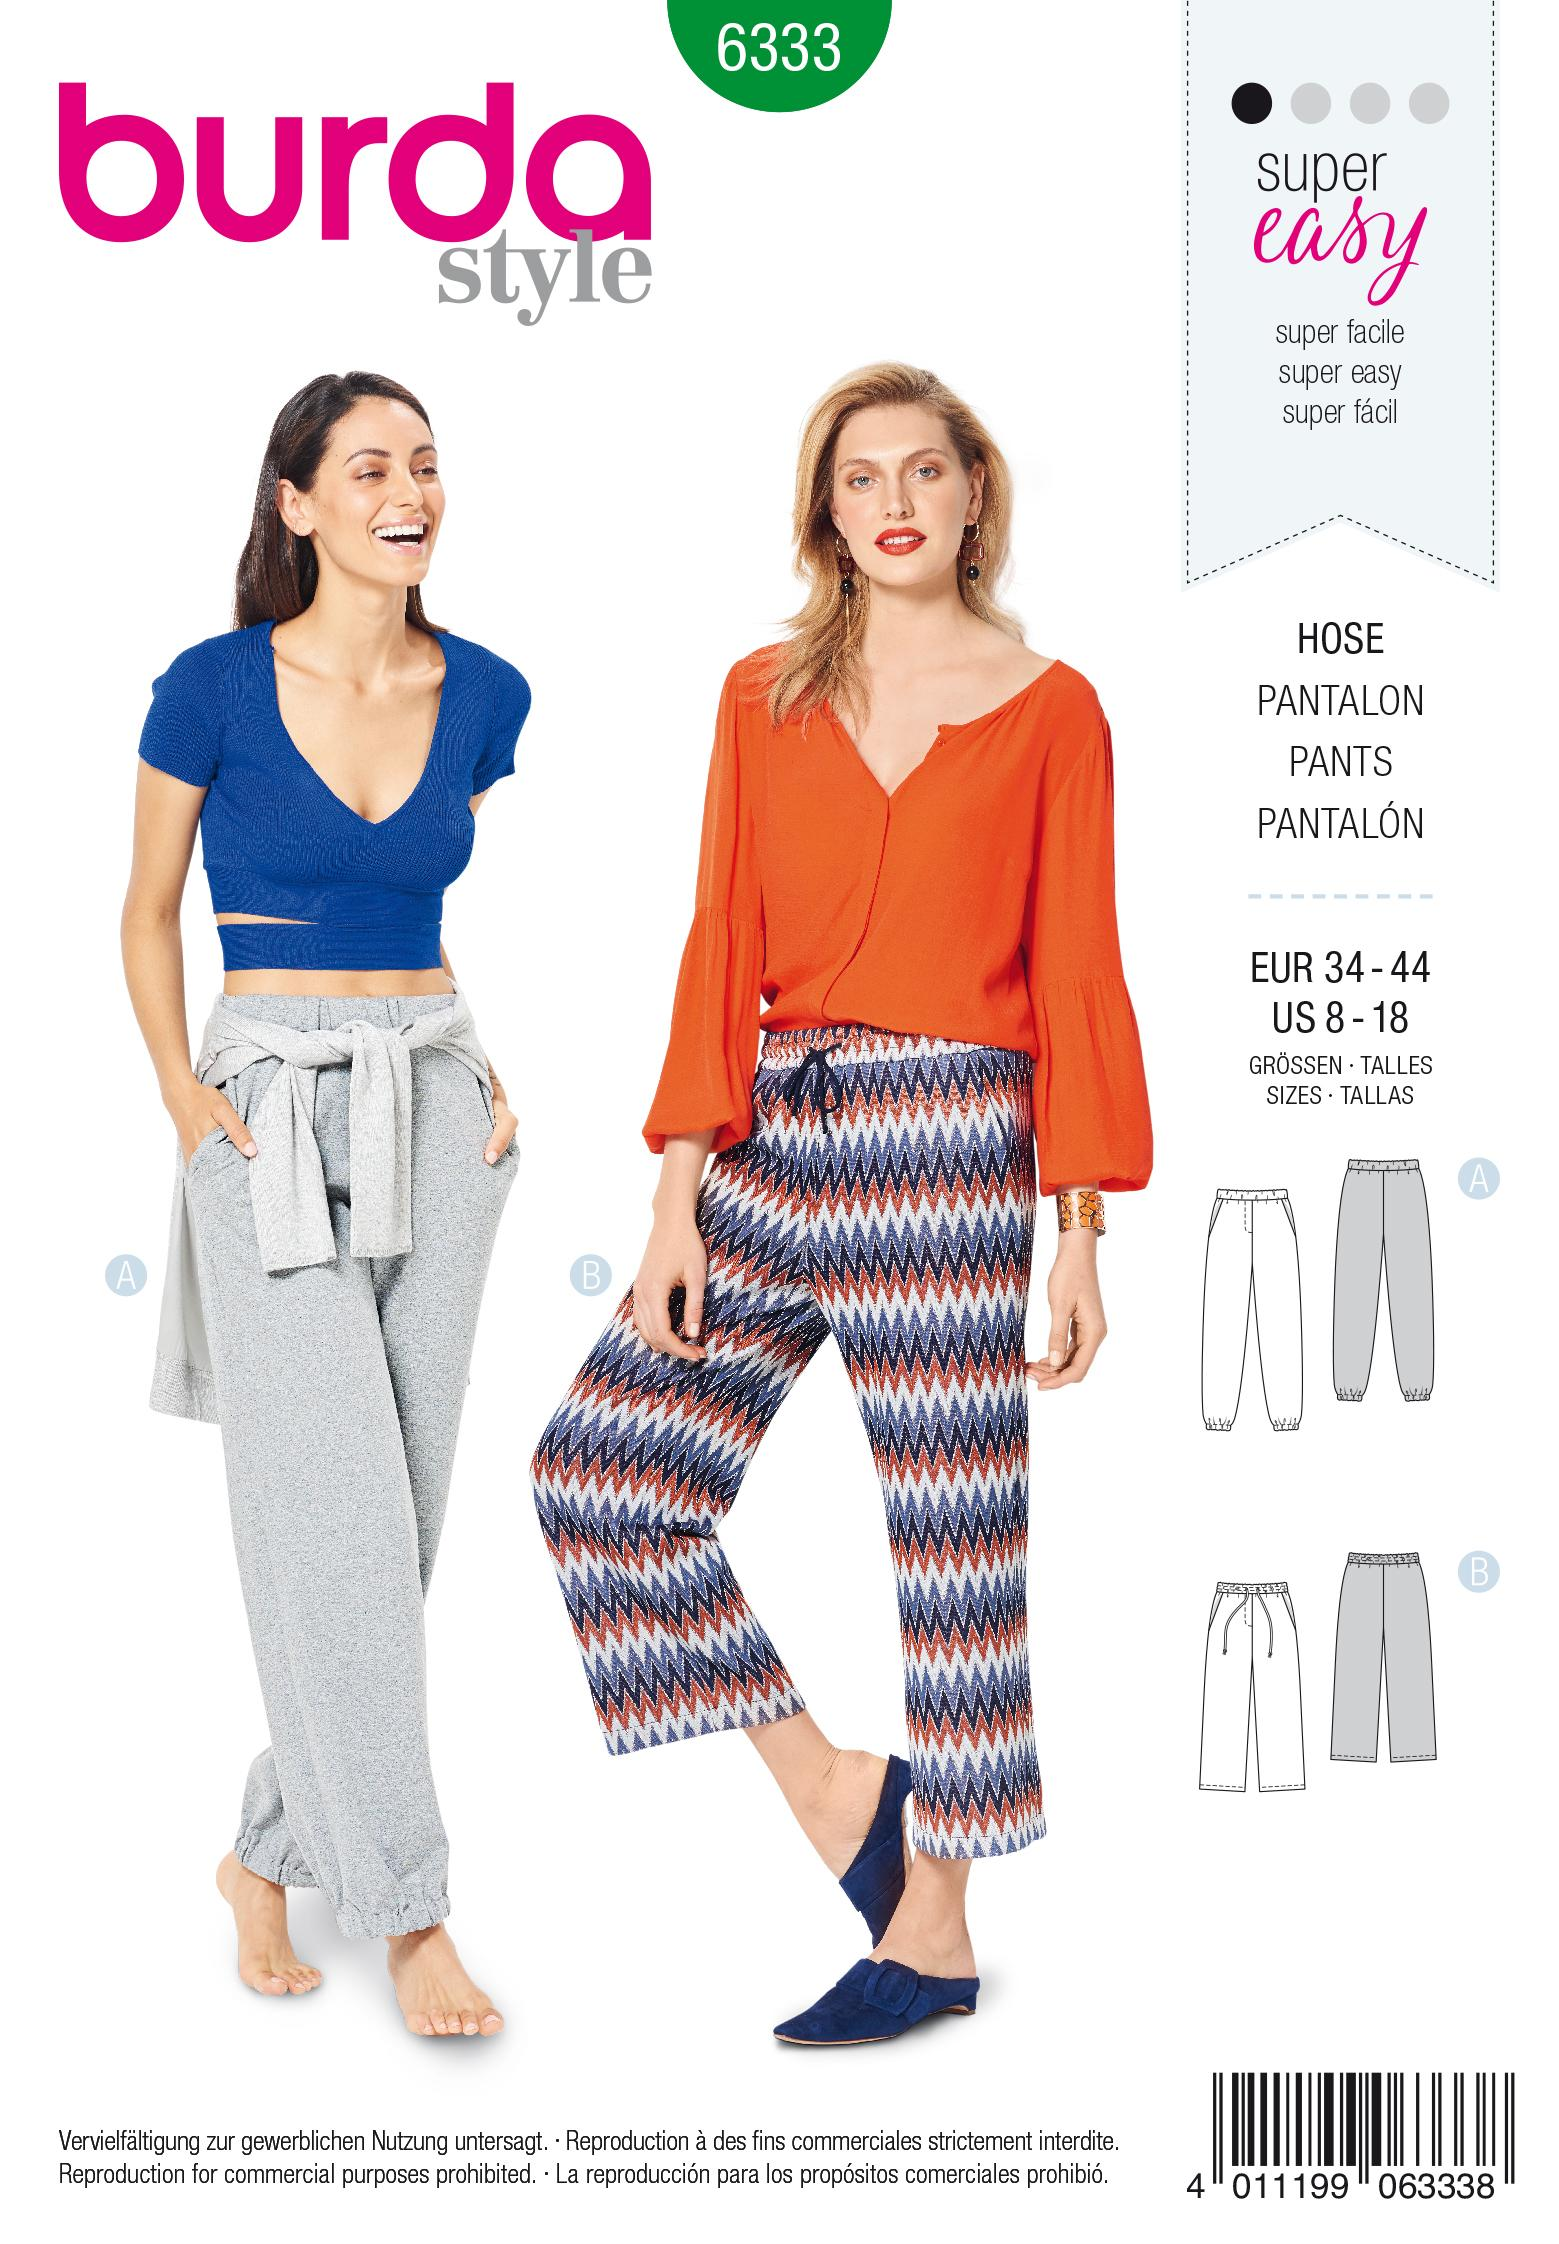 Burda 6333 Misses' jogging pant